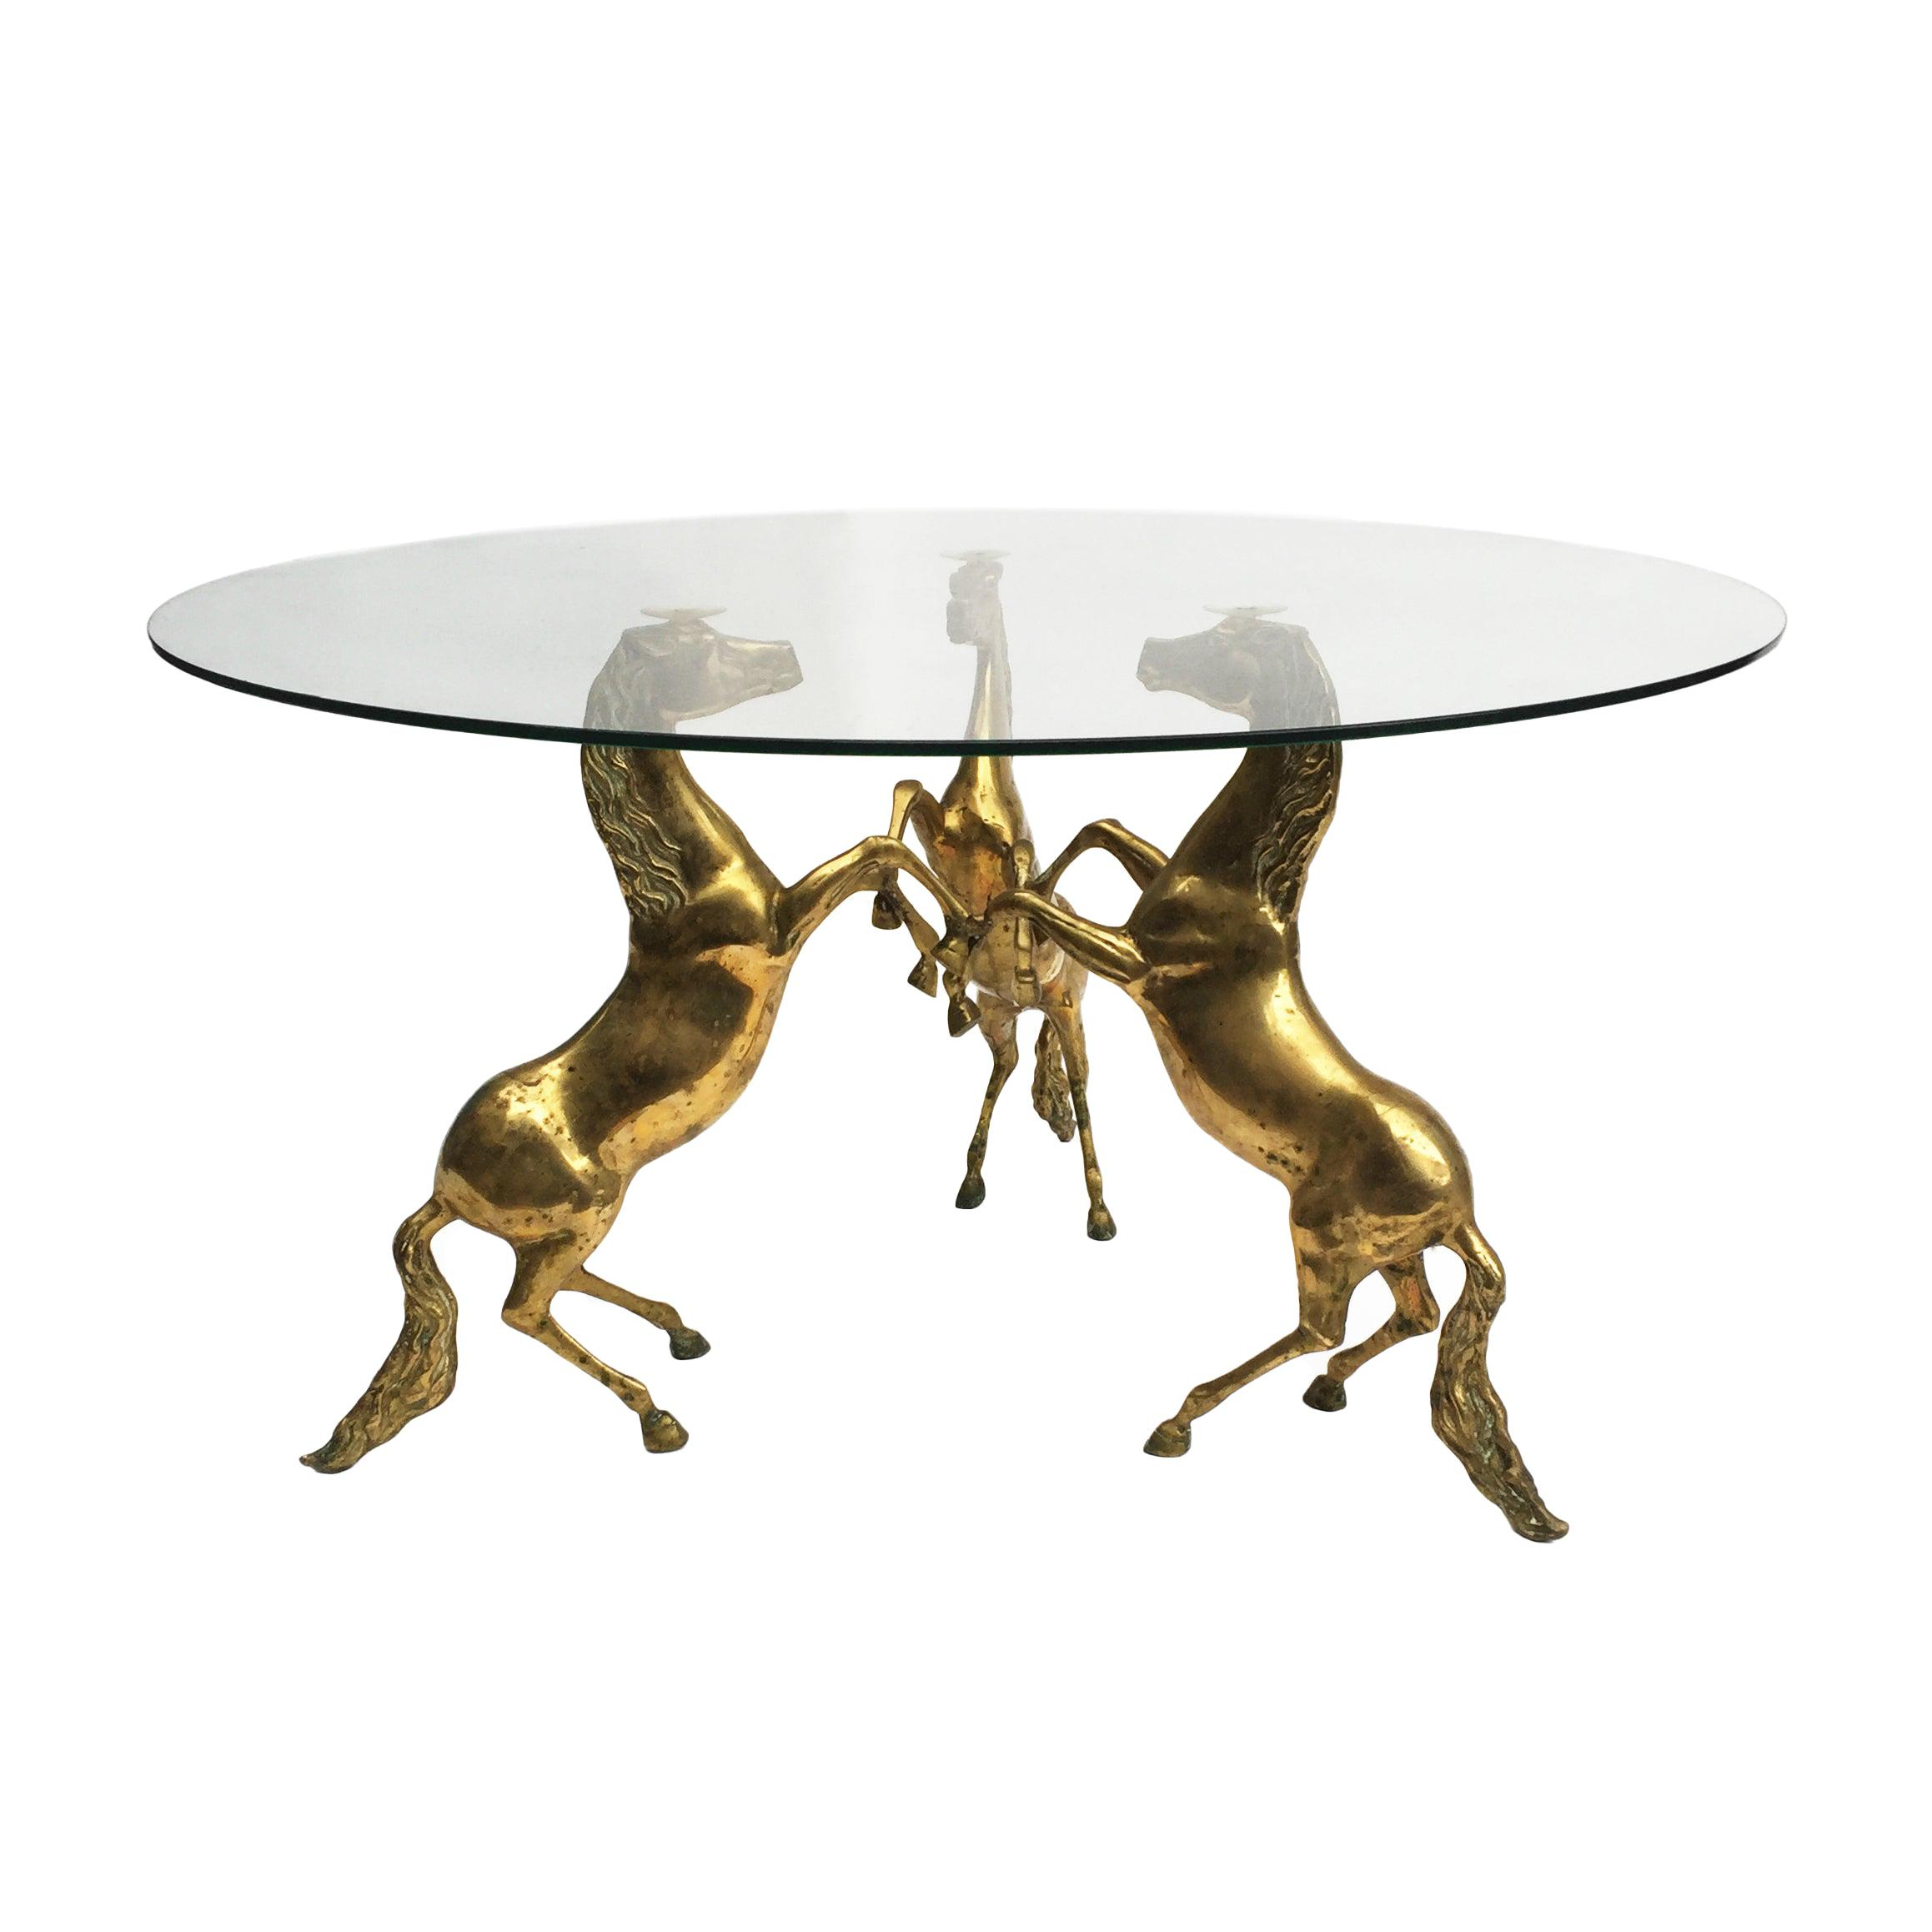 Chodoff Midcentury Bronze Coffee Table With Horse Heads And Glass regarding measurements 2317 X 2317